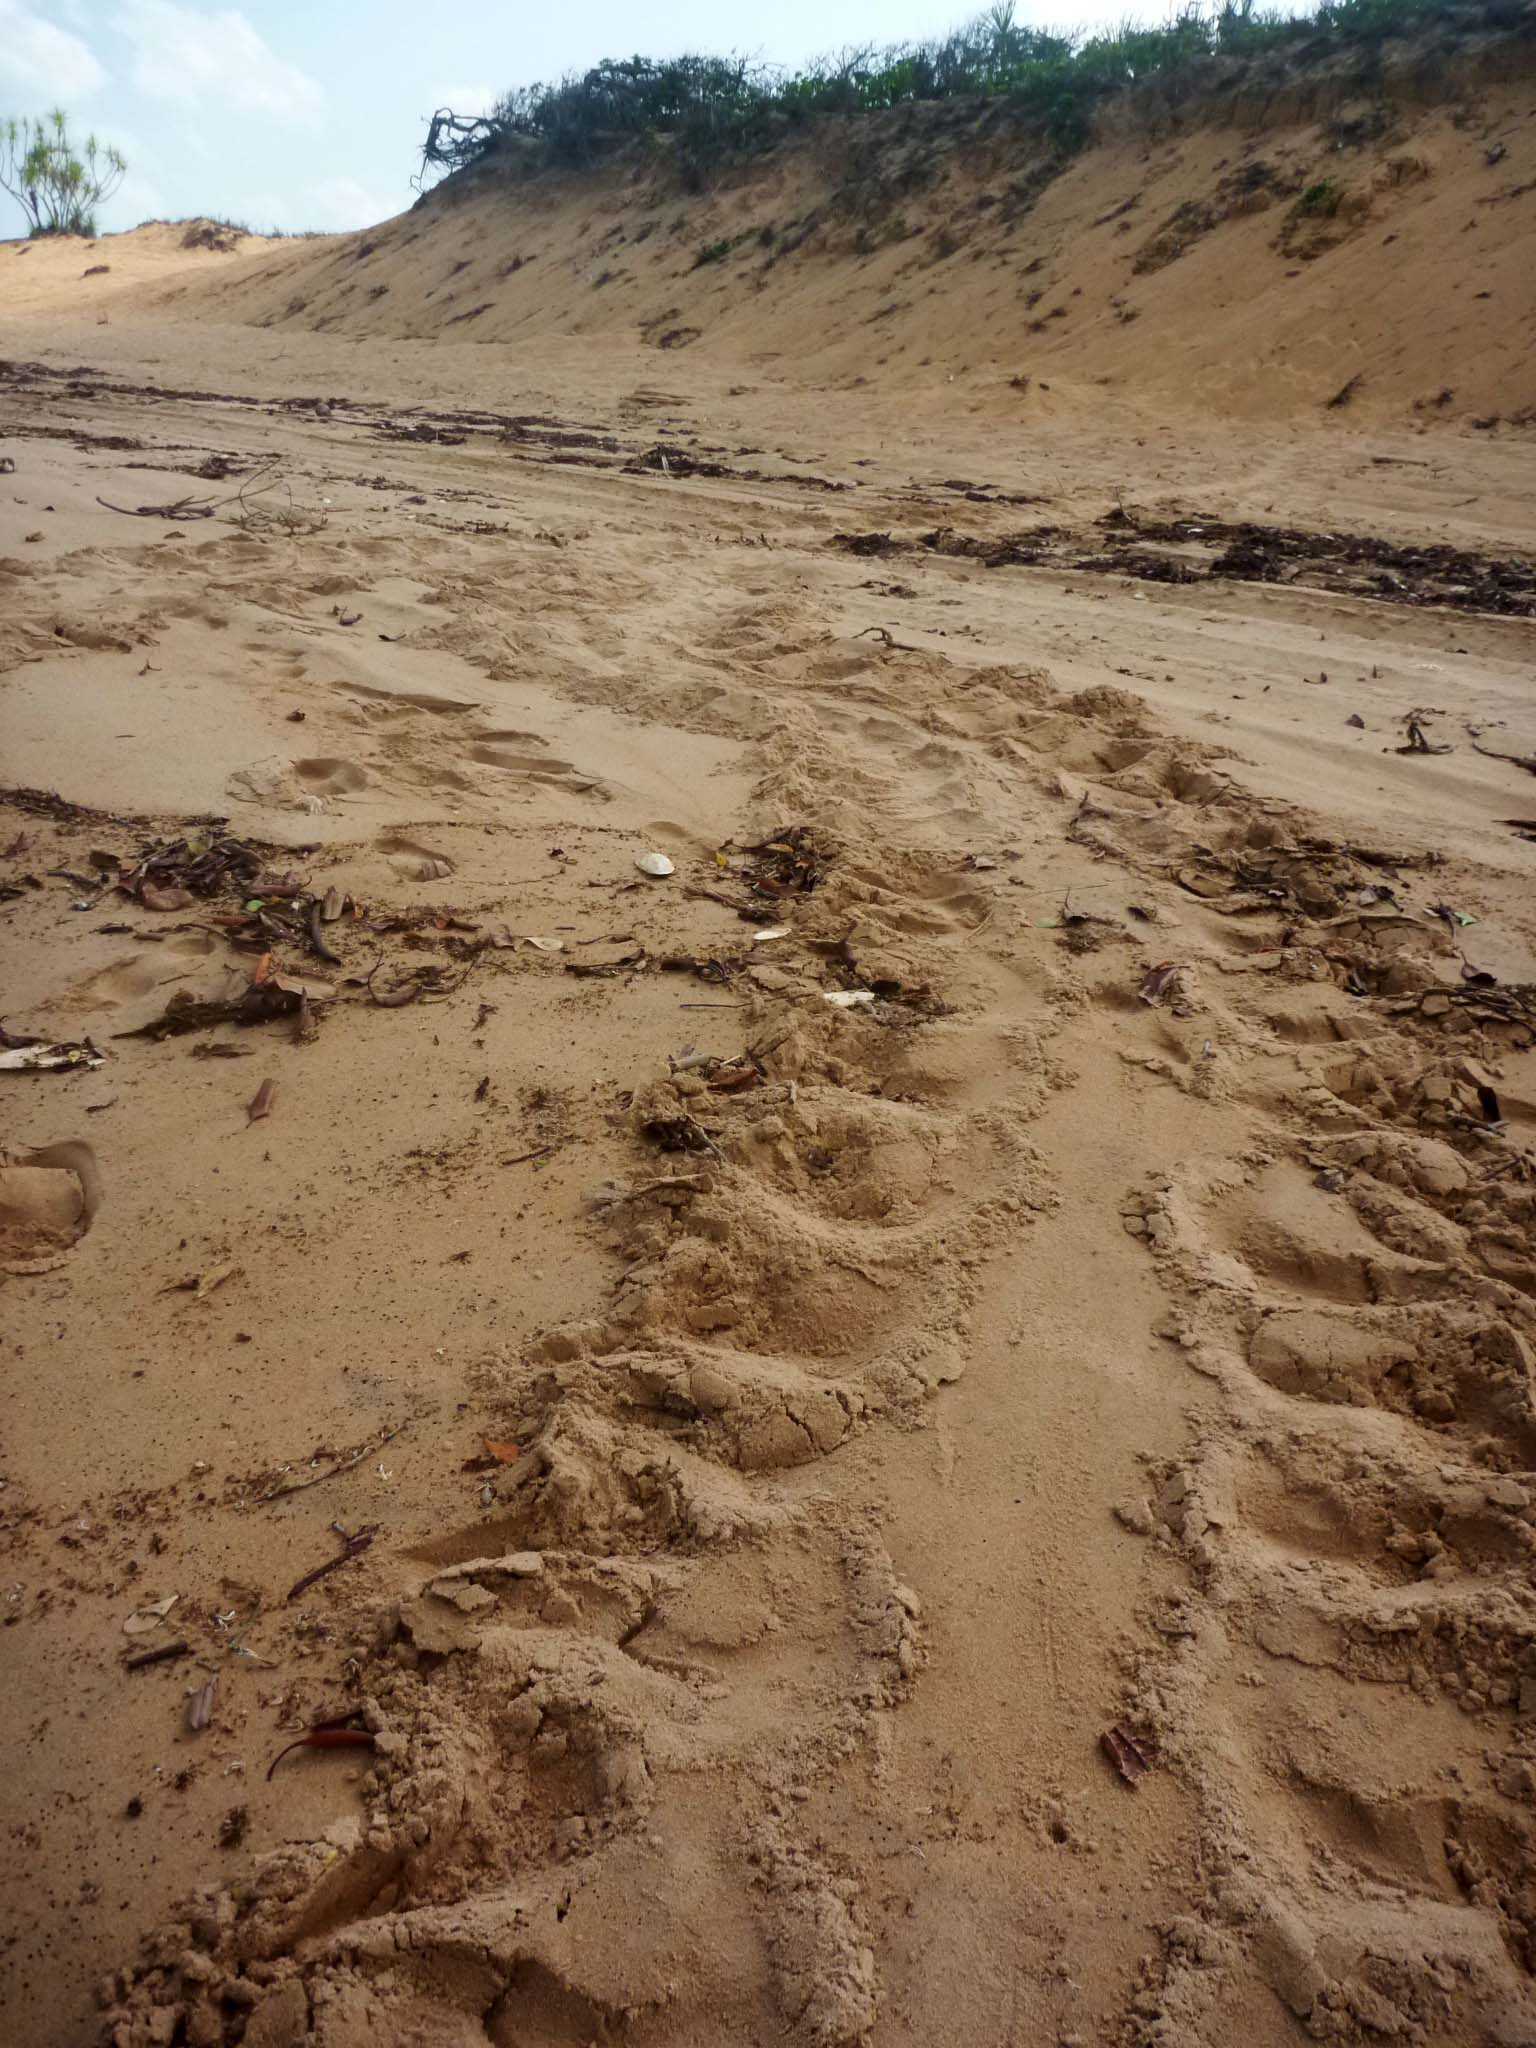 We find a lot of turtle tracks and nesting on this section of beach